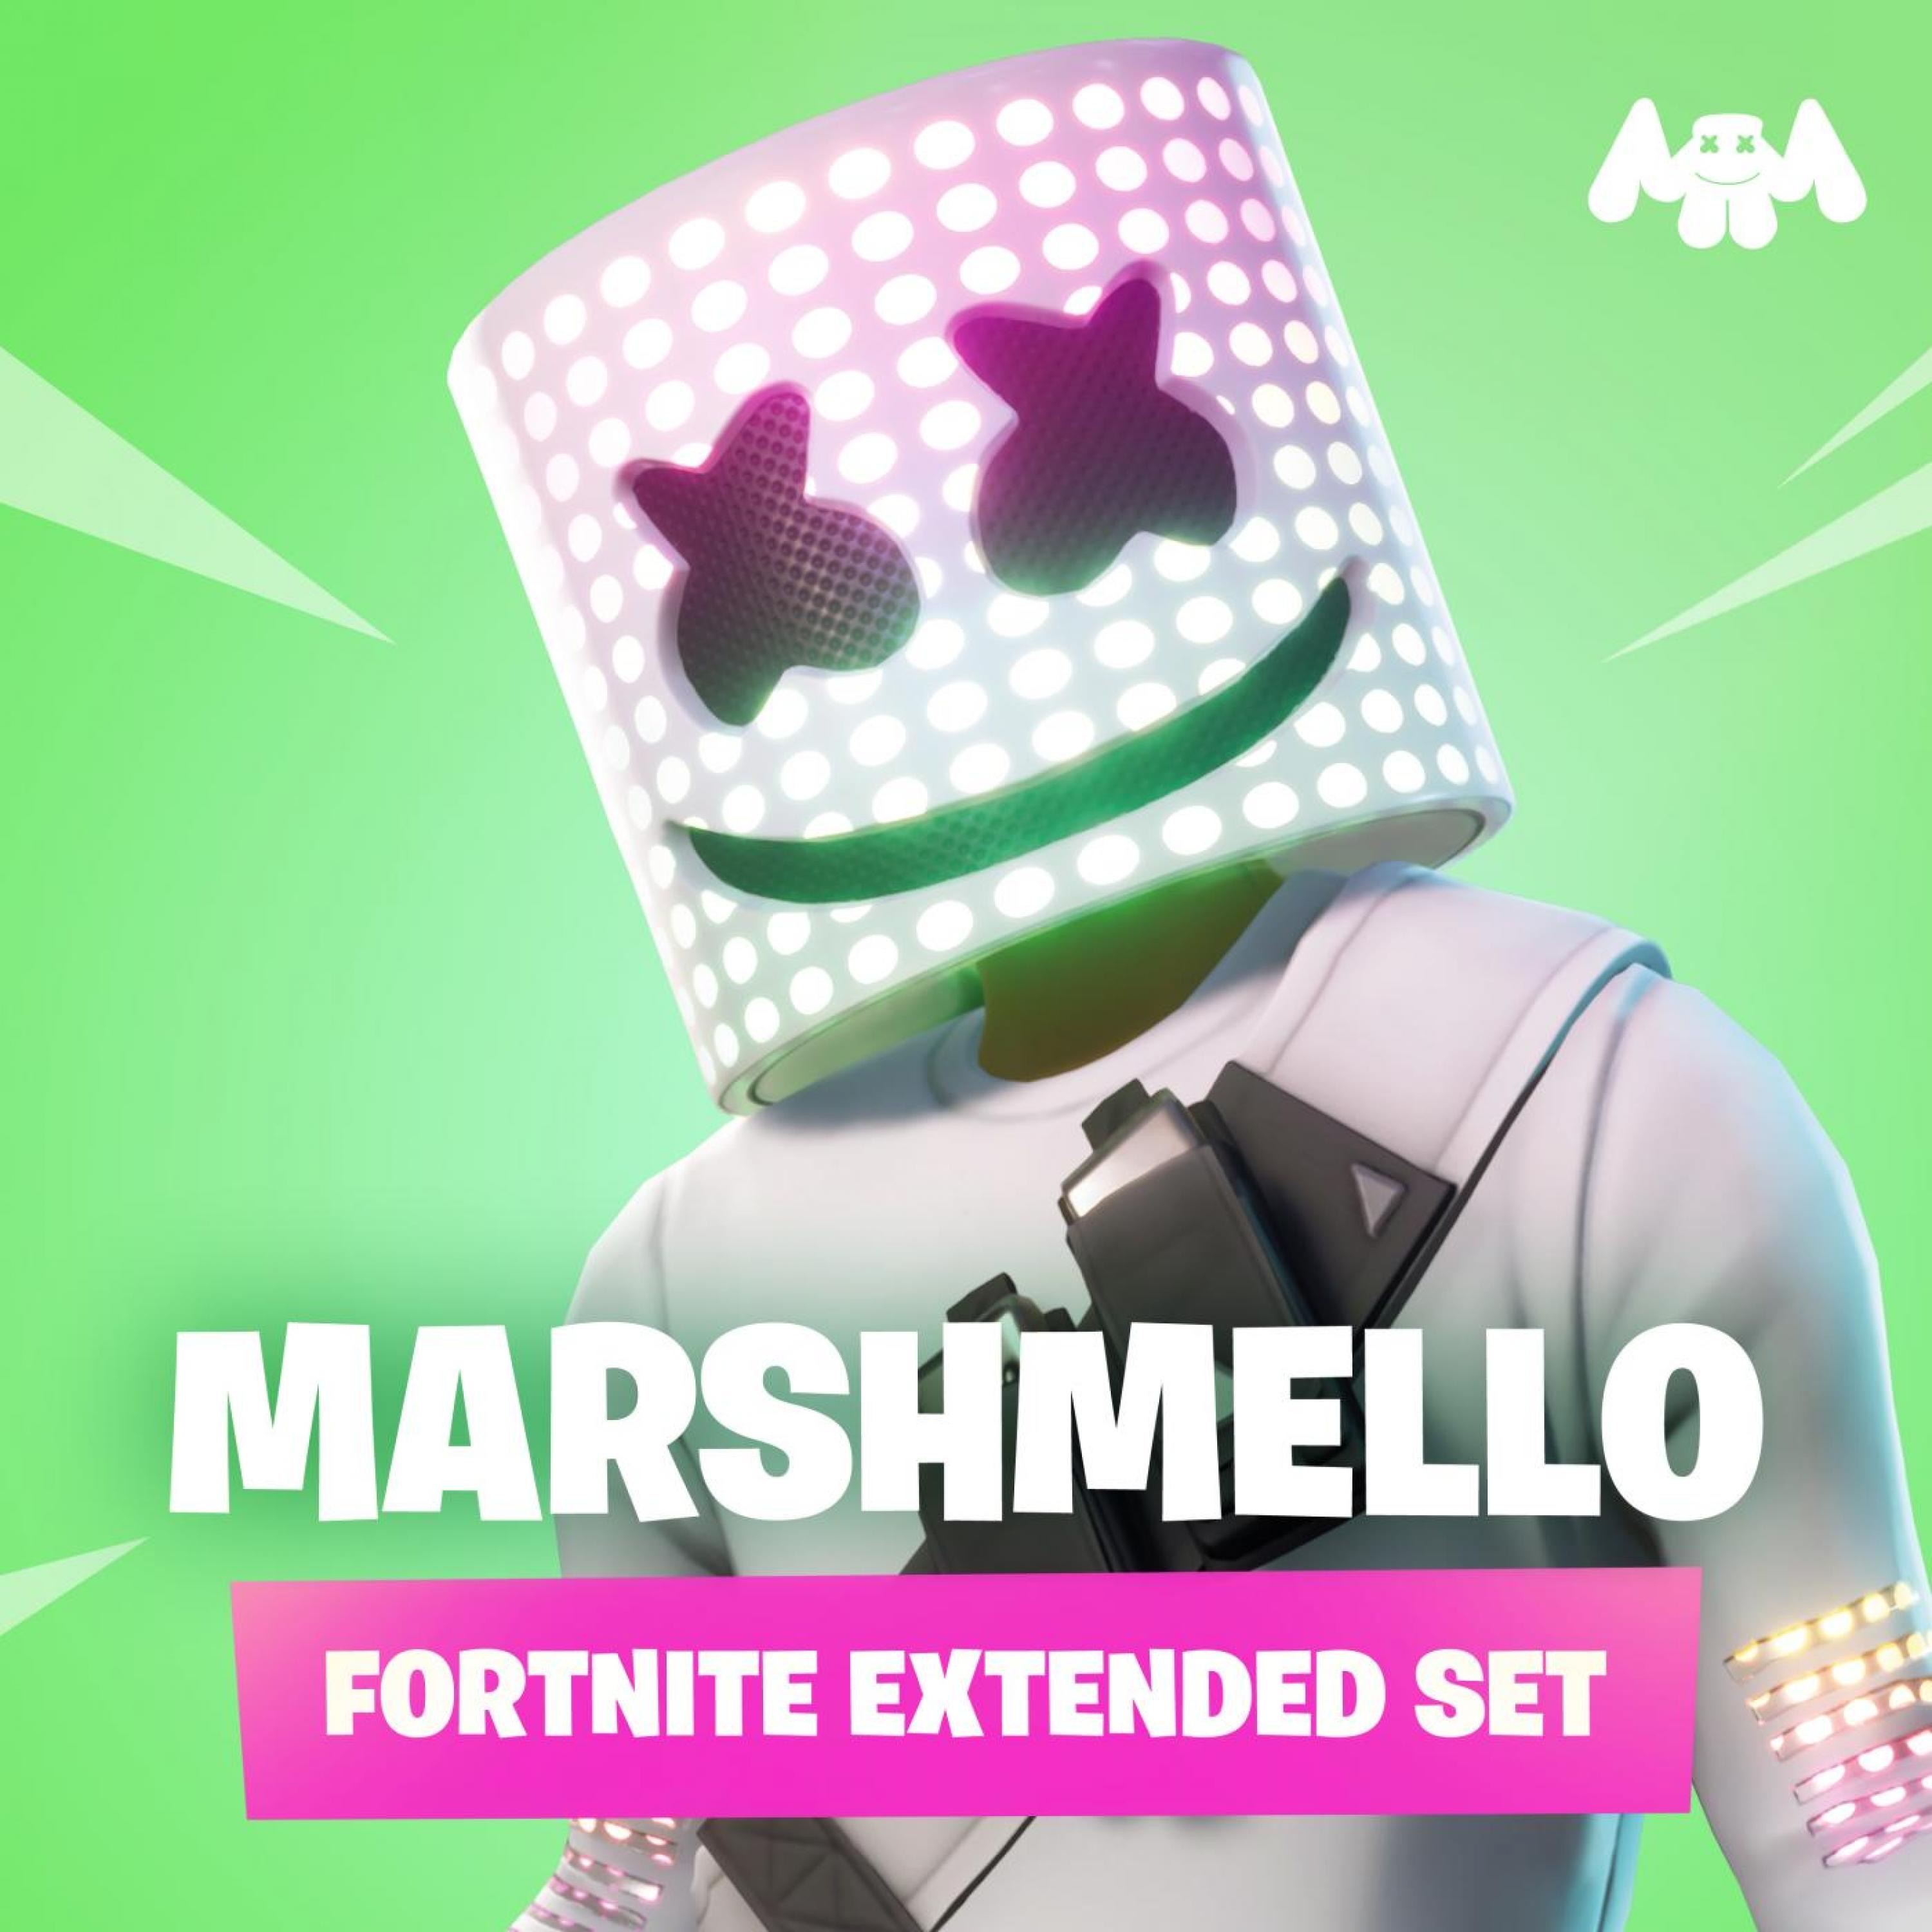 Power (Mixed) by Marshmello